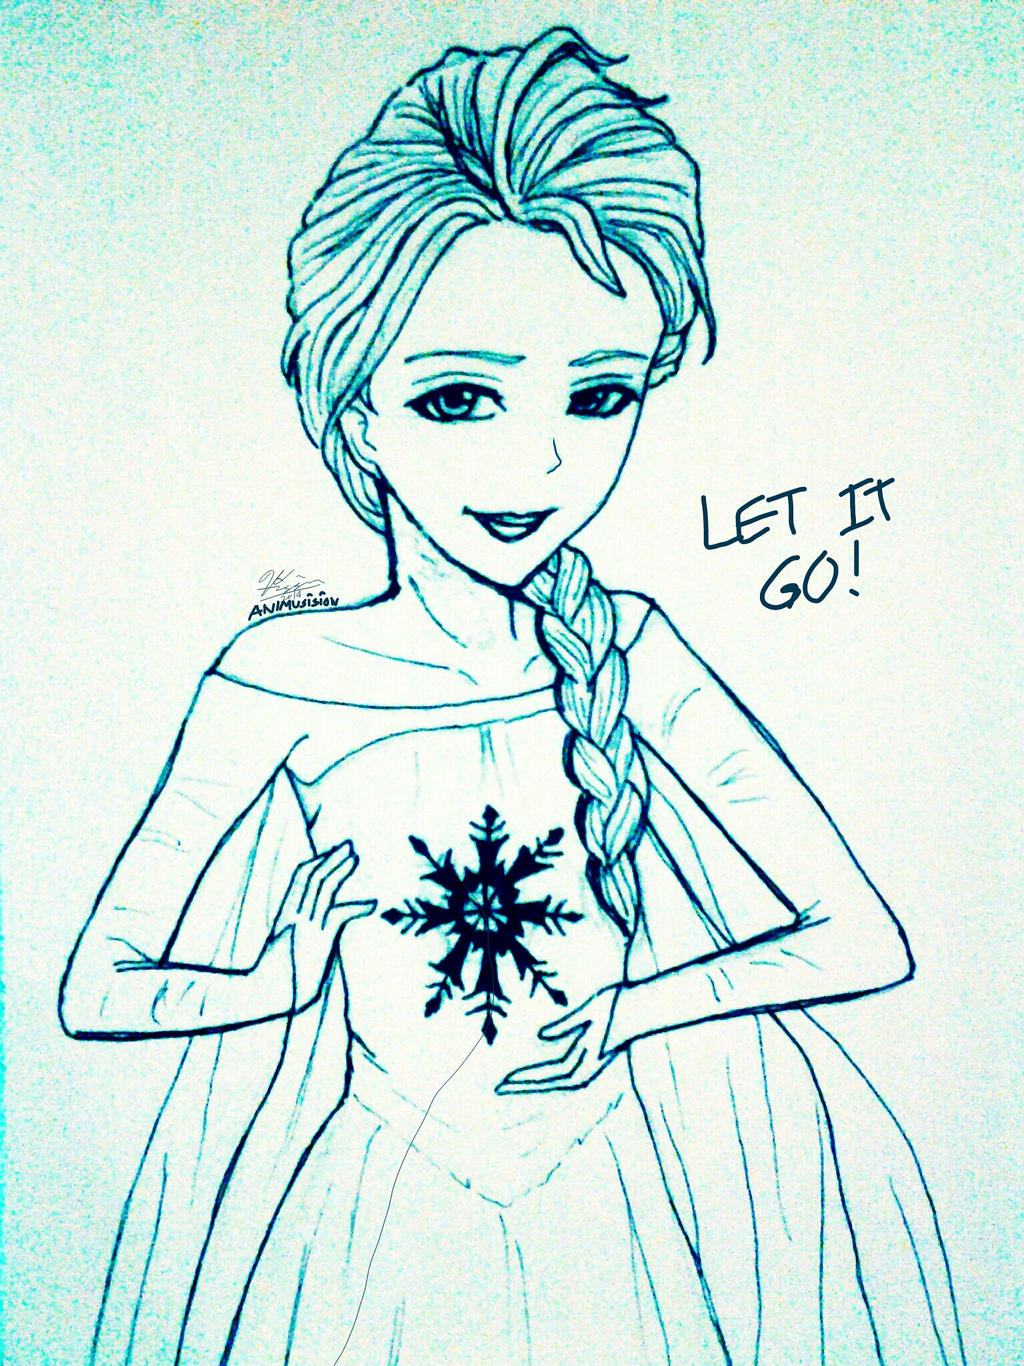 *Let It Go! Elsa(Frozen)* by AniMusision